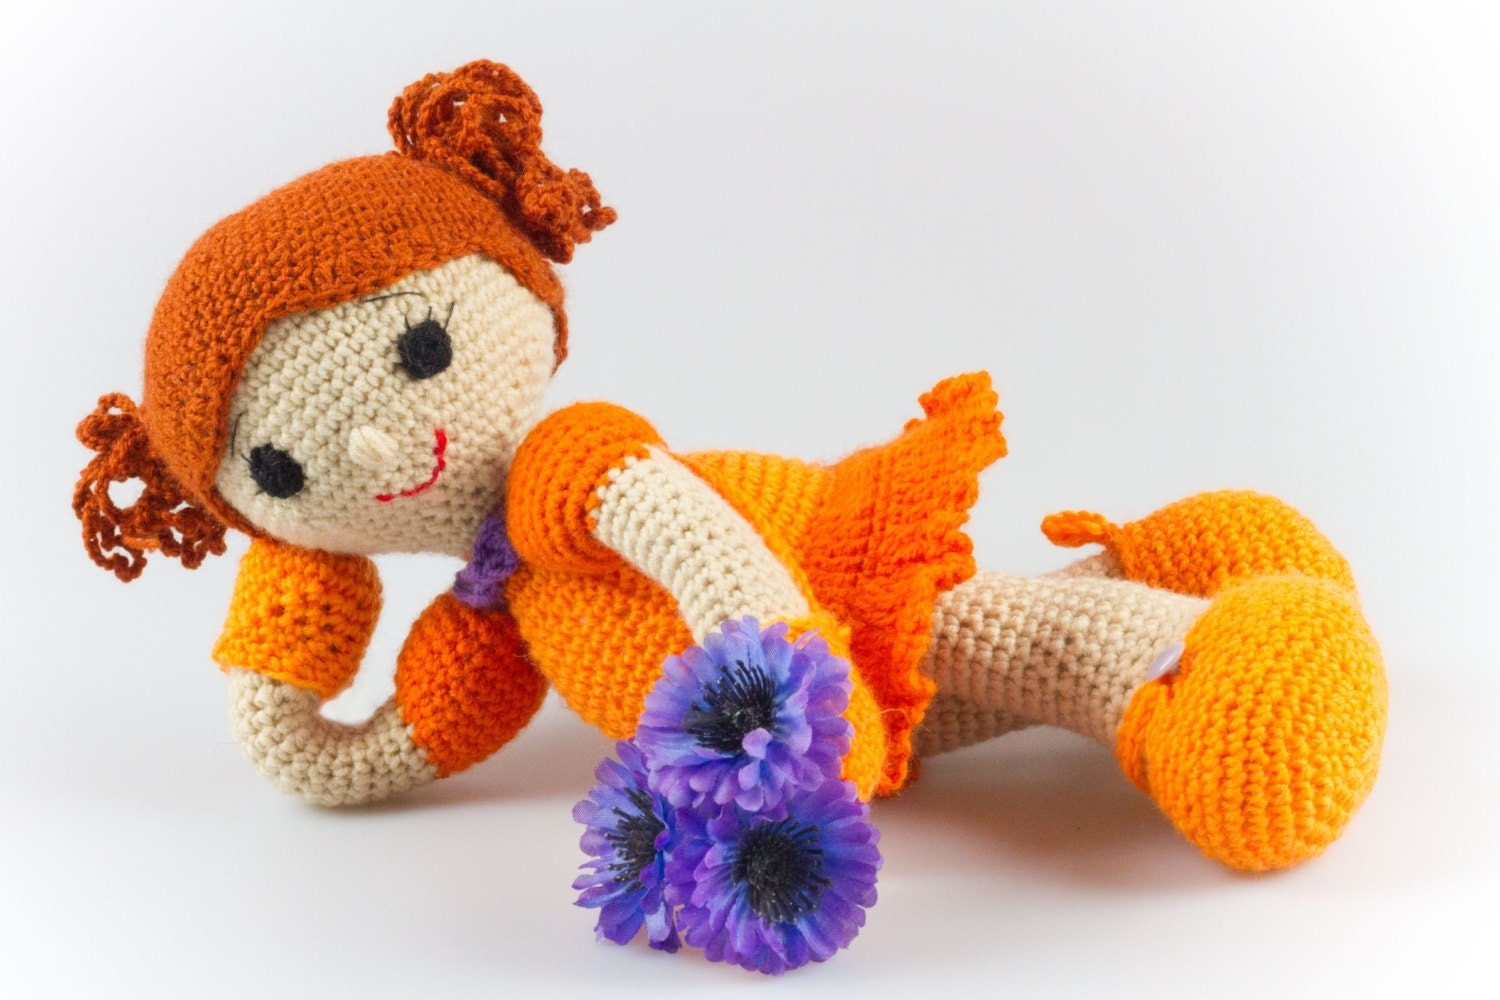 Amigurumi Square Doll : Crochet Doll Pattern Amigurumi Girl Pattern Crochet Girl